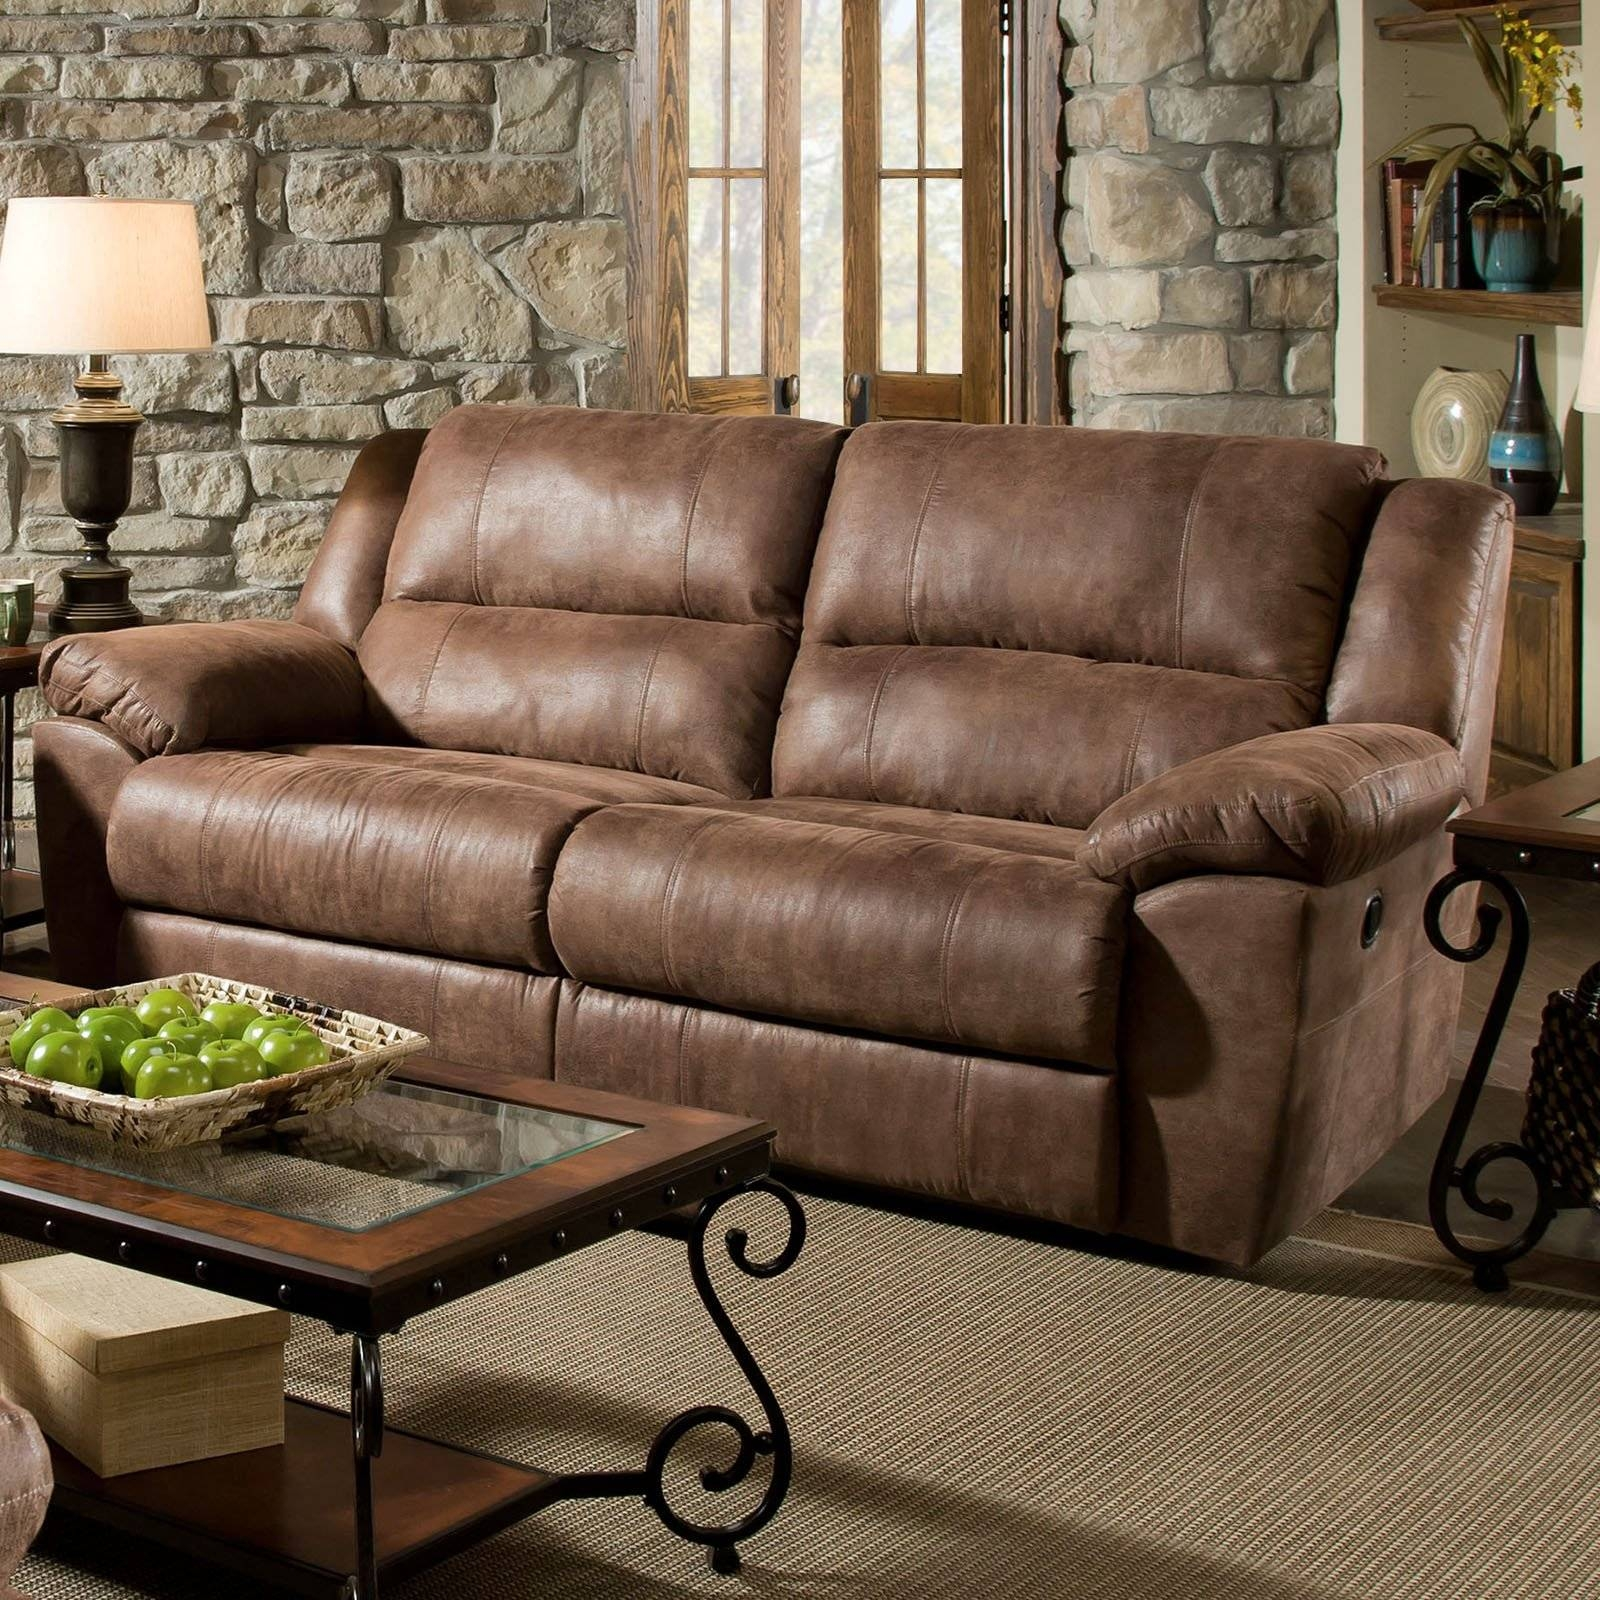 Simmons Upholstery Phoenix Double Motion Sofa - Mocha - Walmart in Simmons Sofas (Image 14 of 15)